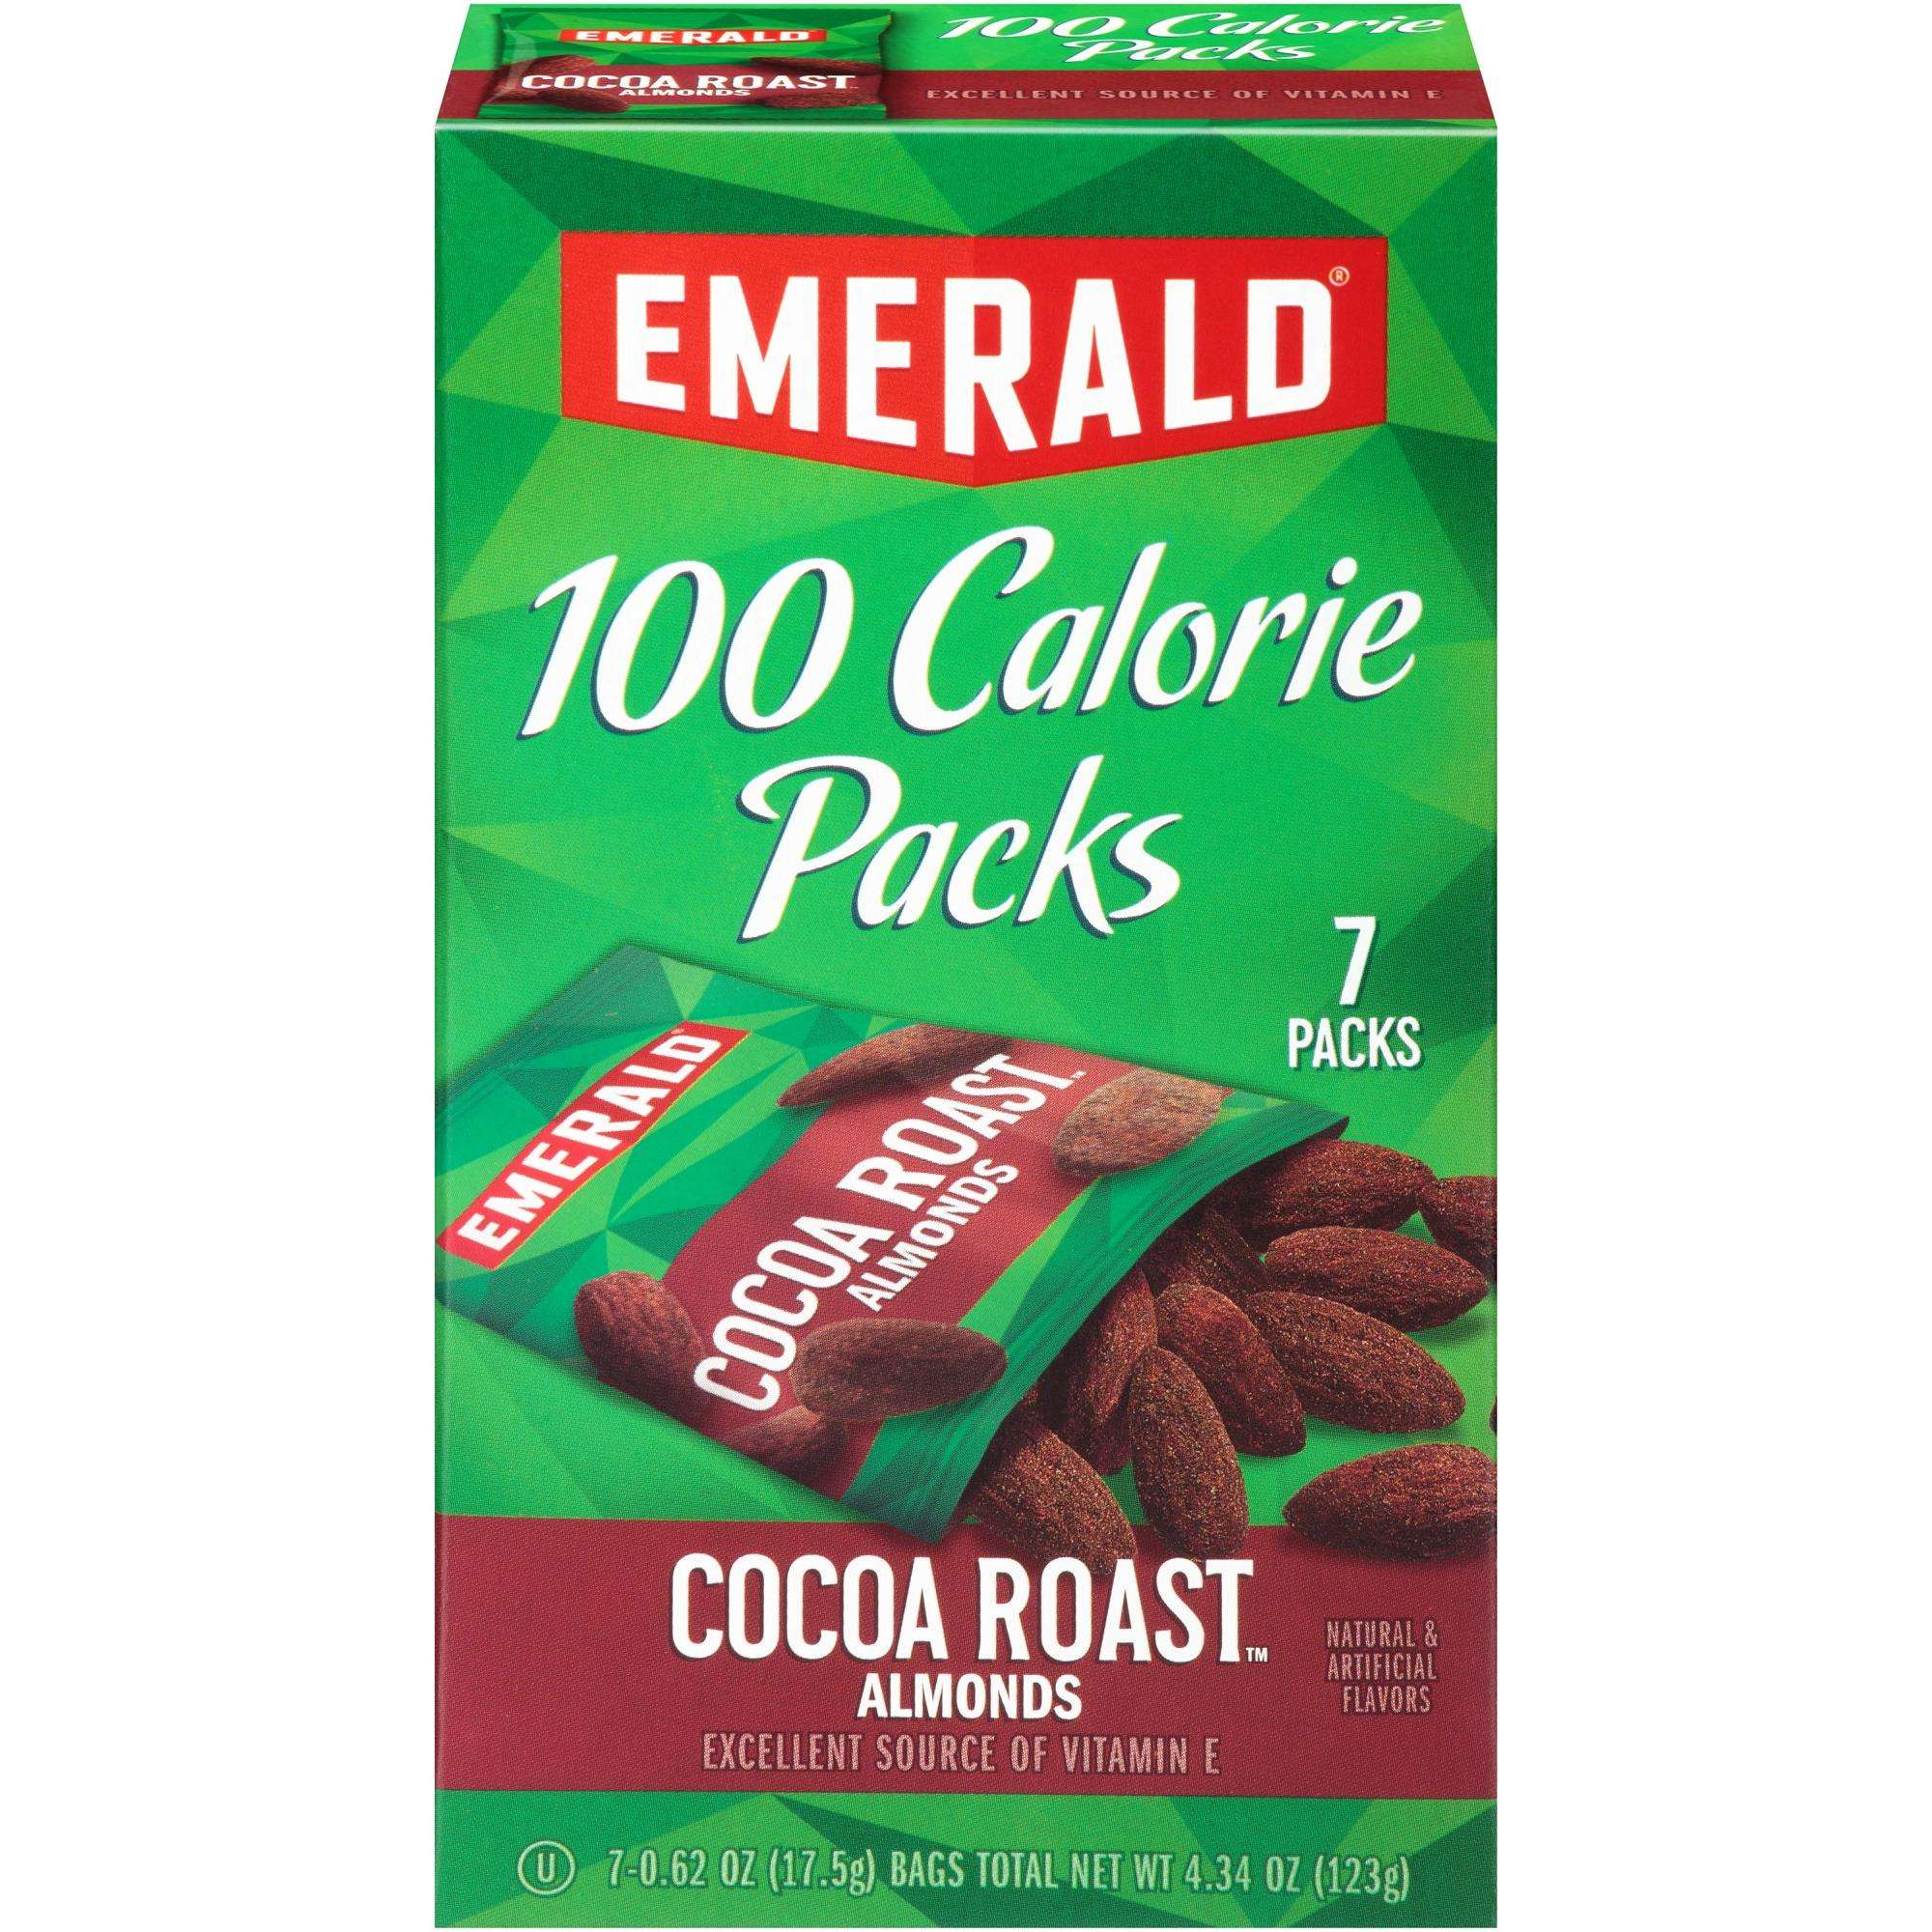 Emerald Cocoa Roast Almonds, 100 Calorie Packs- 7 Count Boxes by Diamond Foods